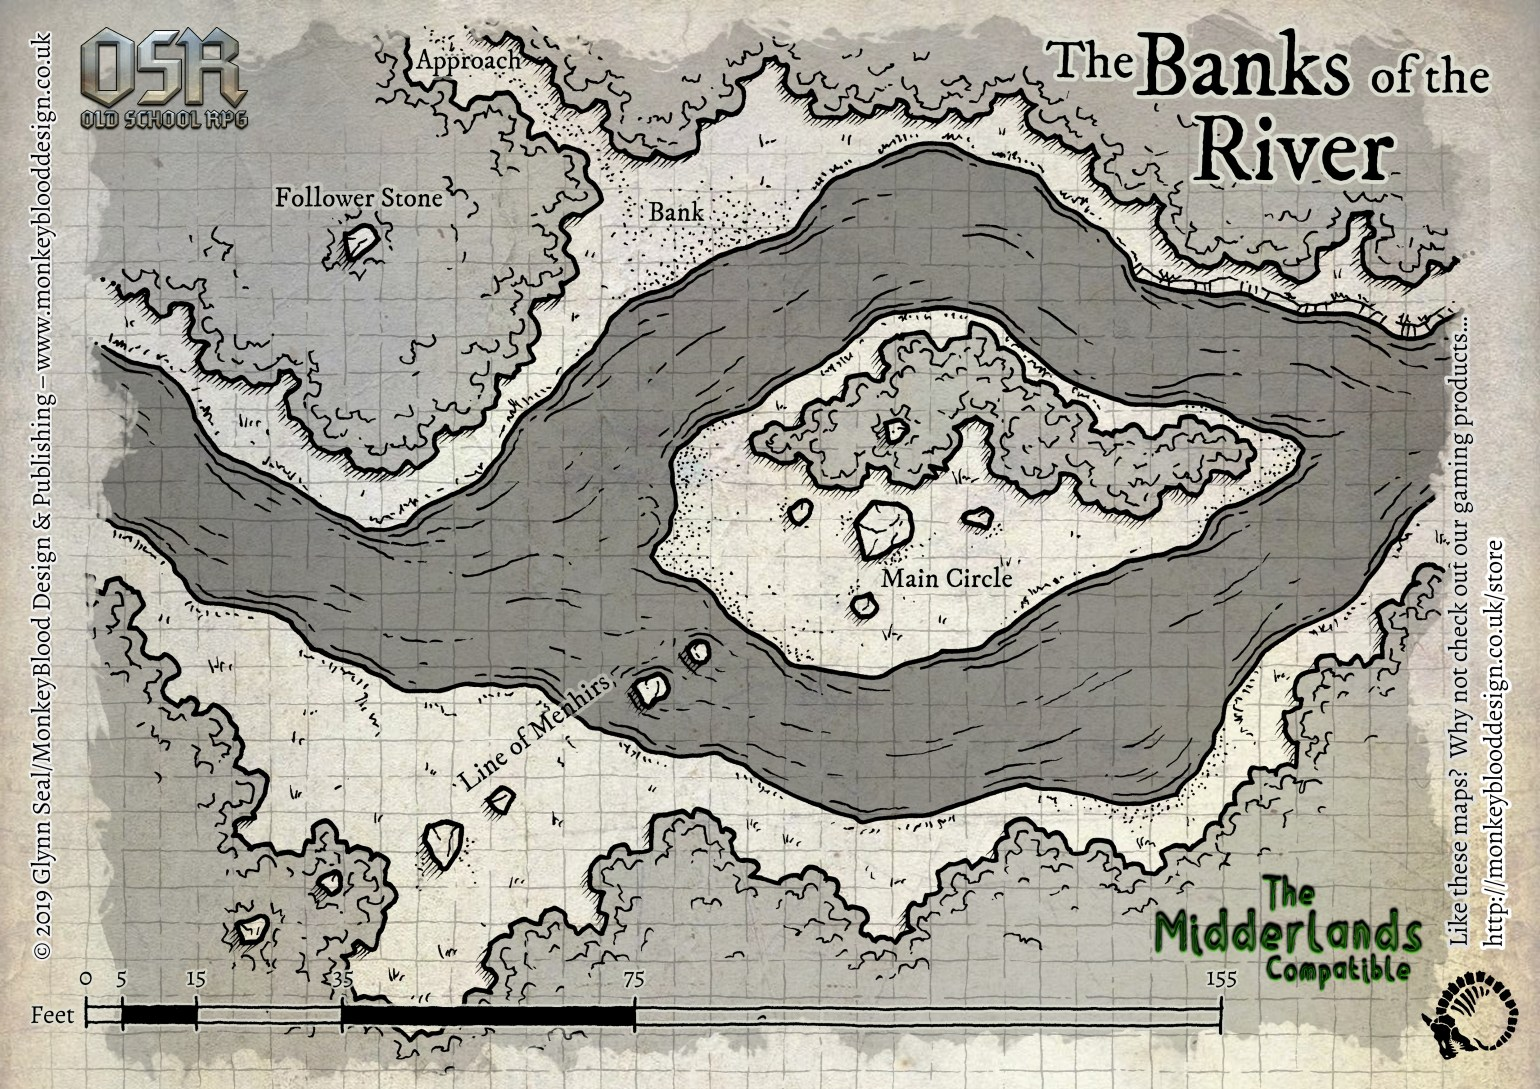 173 Banks of the River r1.jpg